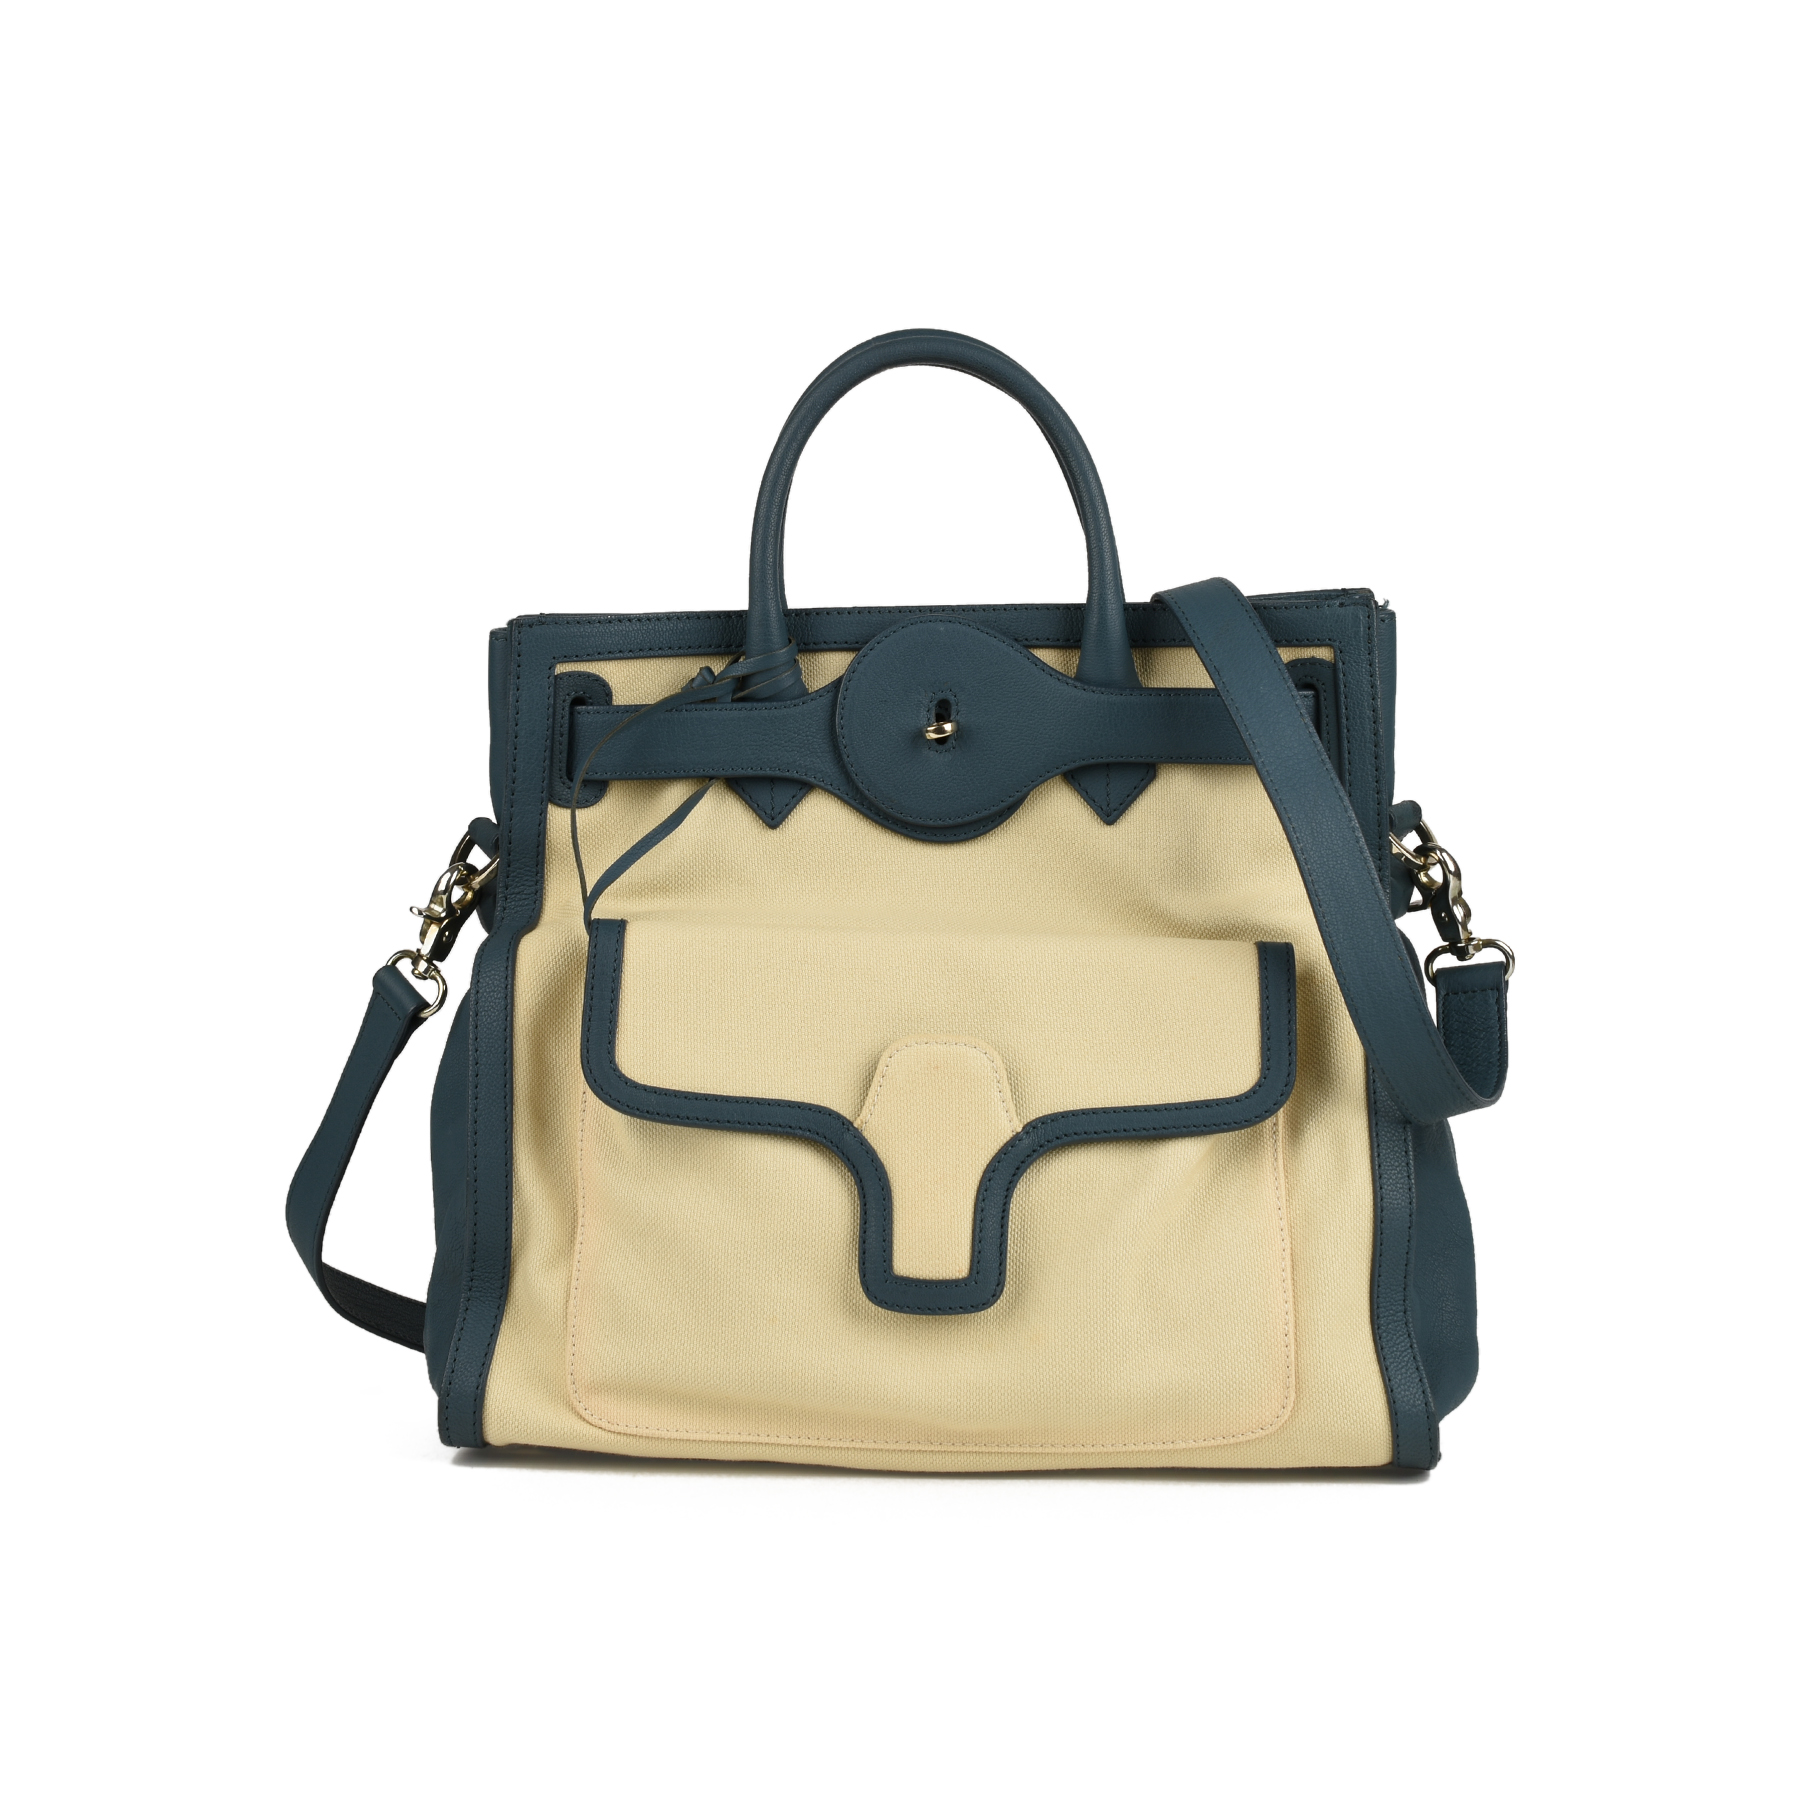 709825227fe Authentic Second Hand Balenciaga Canvas Tote Bag (PSS-415-00010) - THE  FIFTH COLLECTION